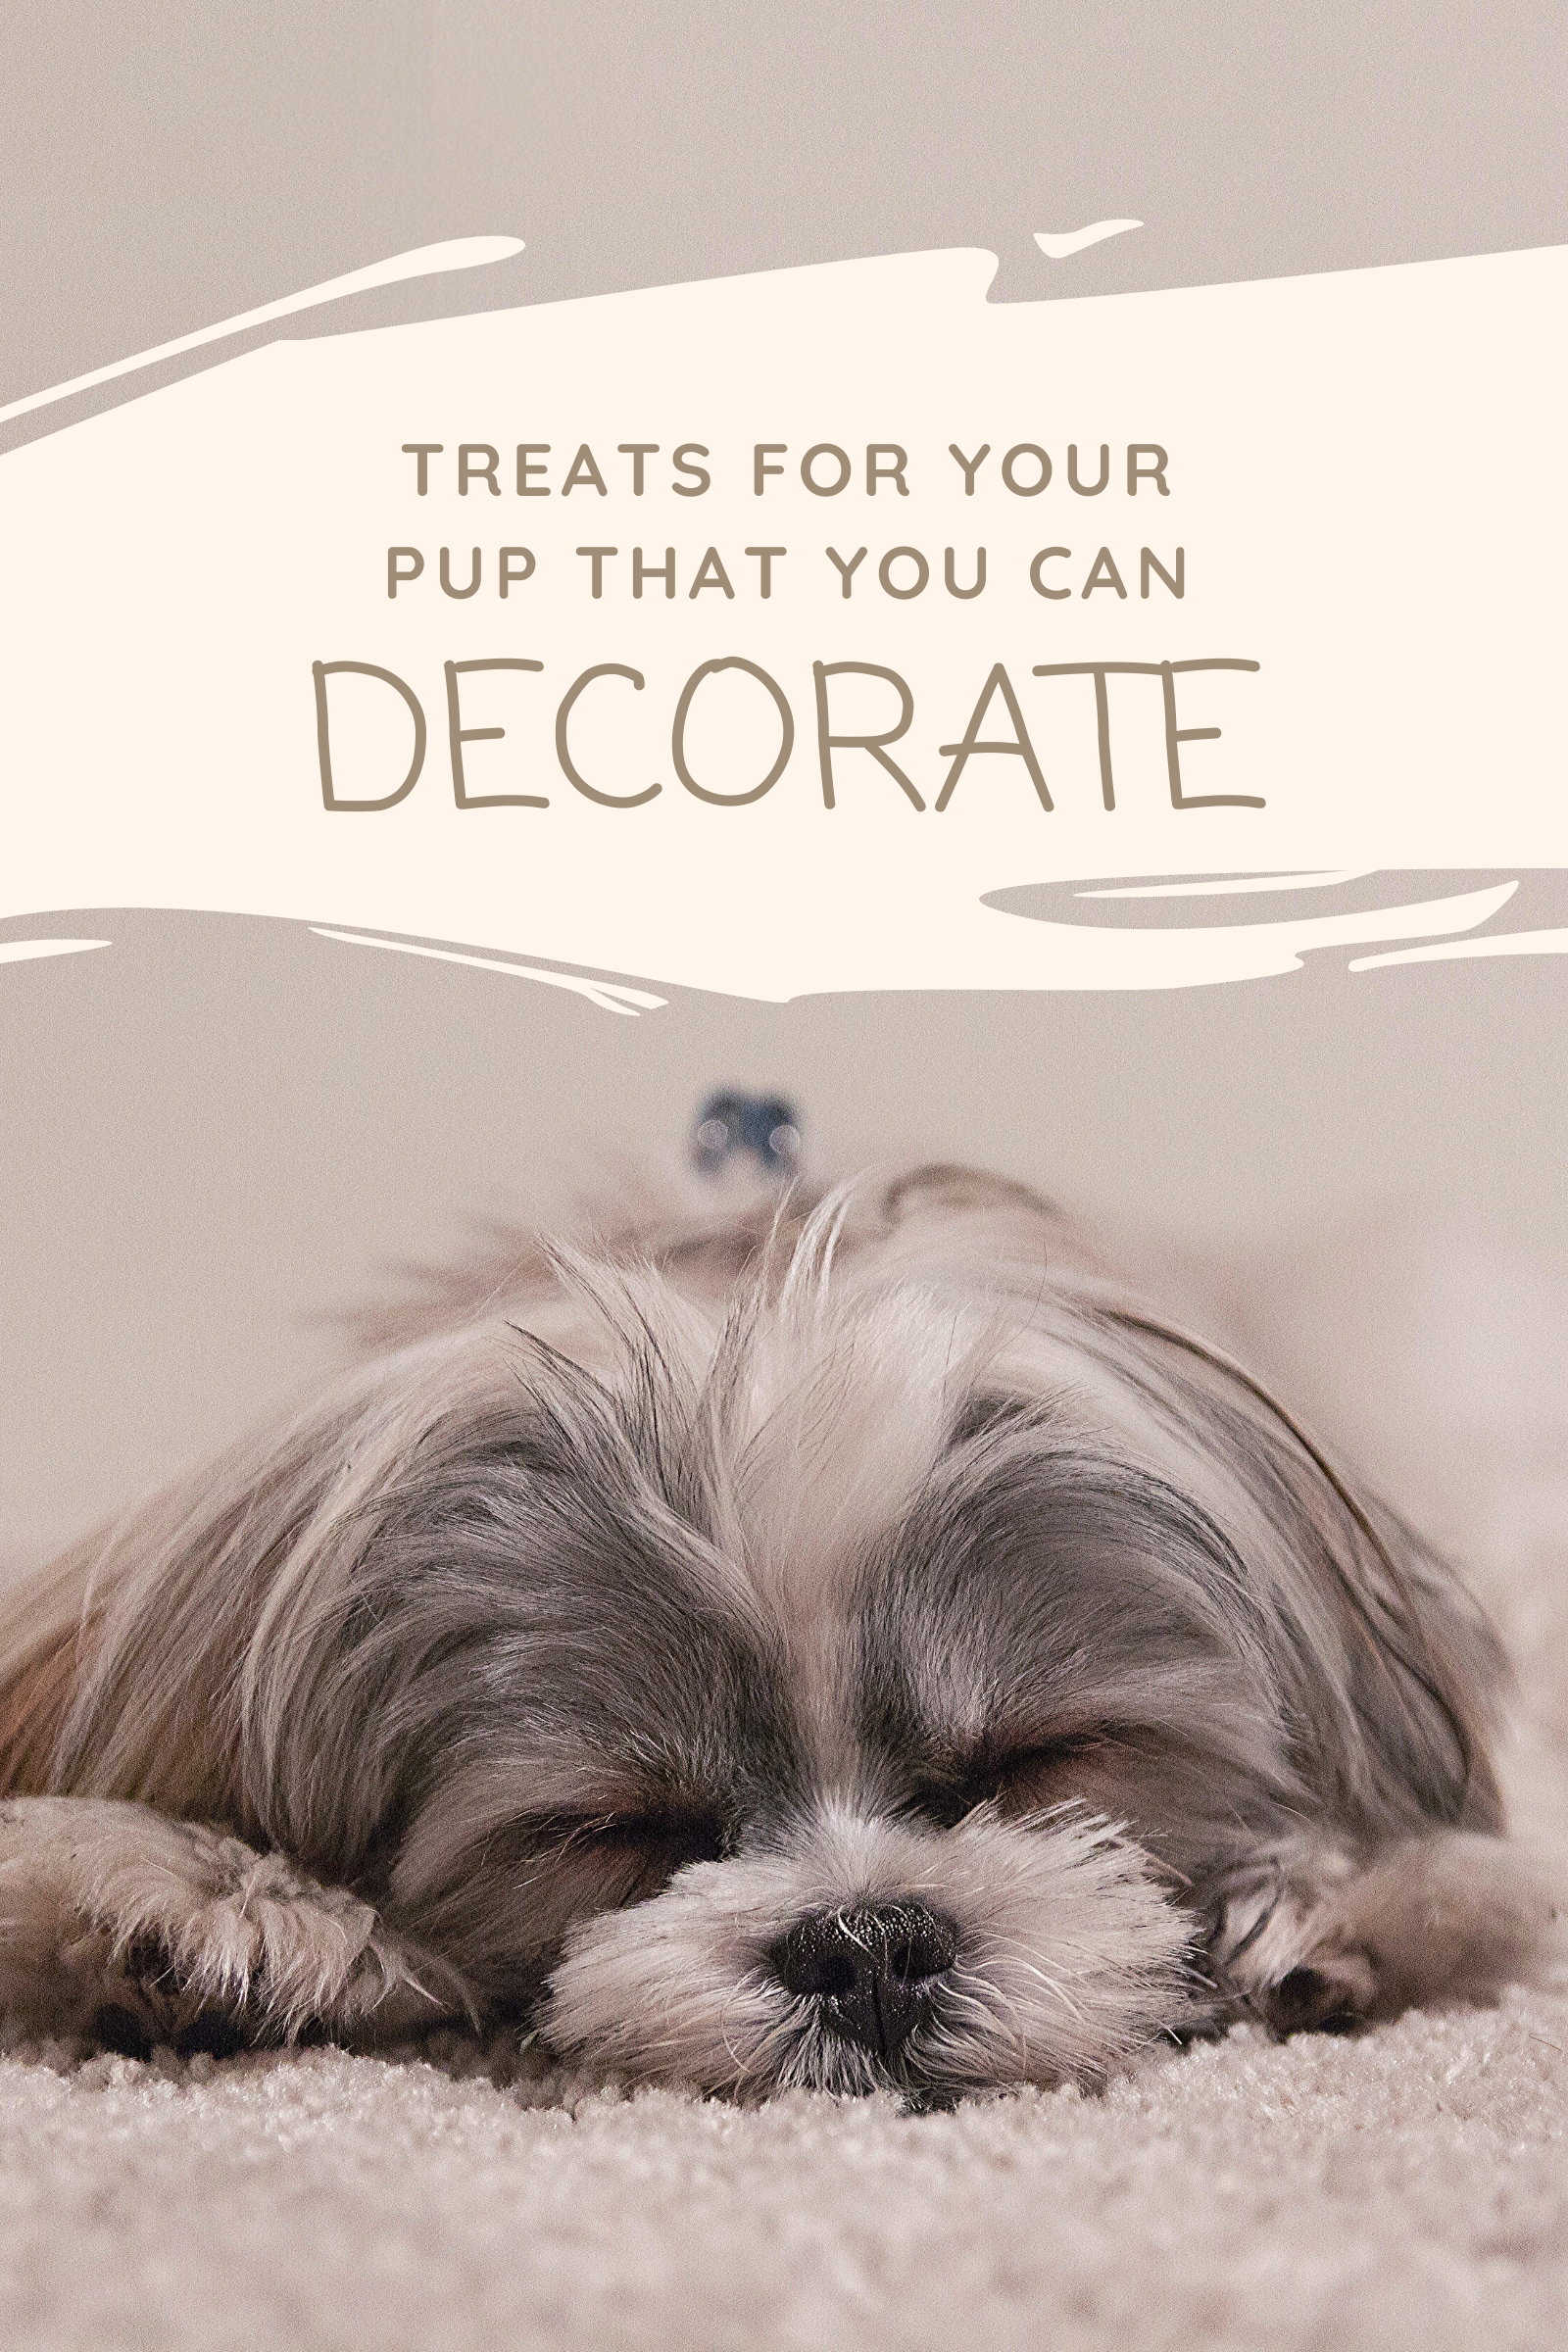 Treats for your pup that you can